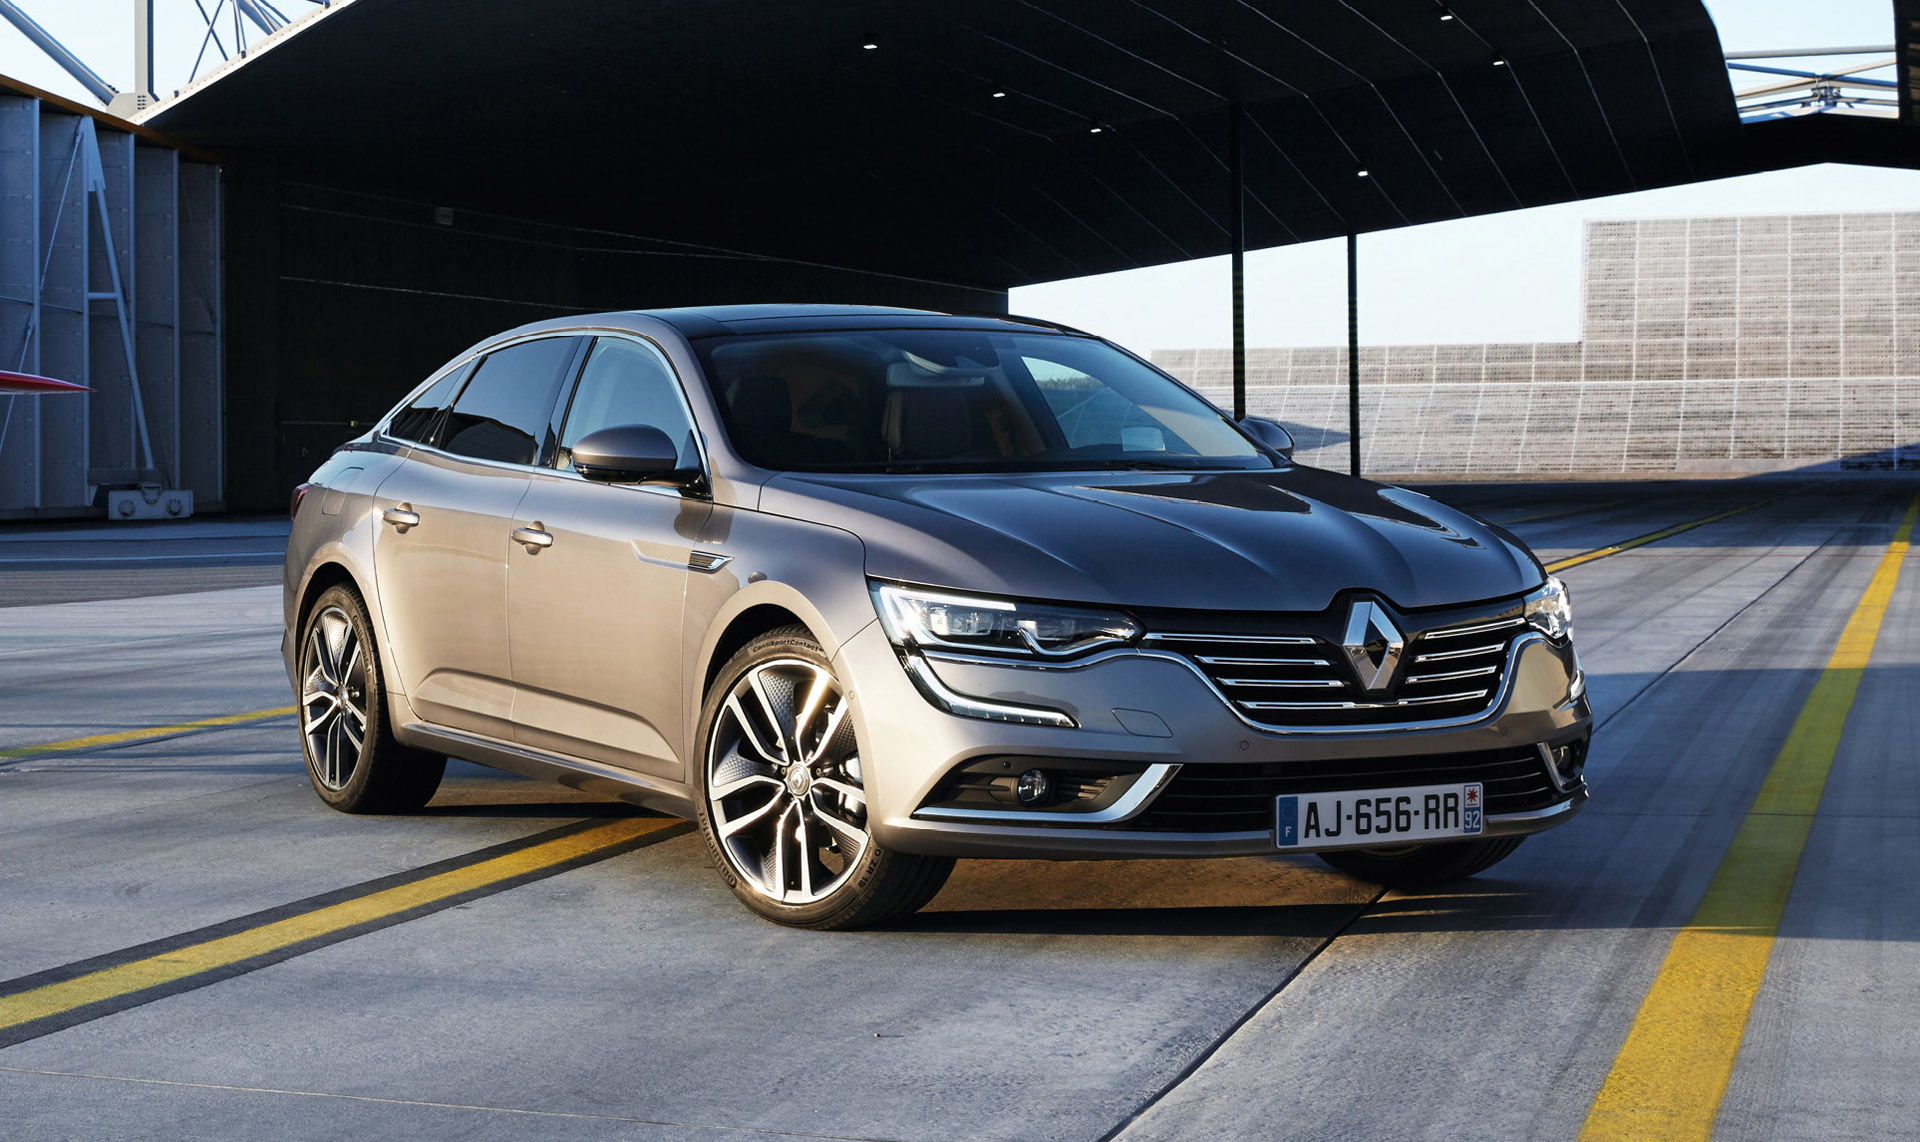 Diesel Wallpaper Cars Renault Replaces Laguna With New Talisman Sedan Video